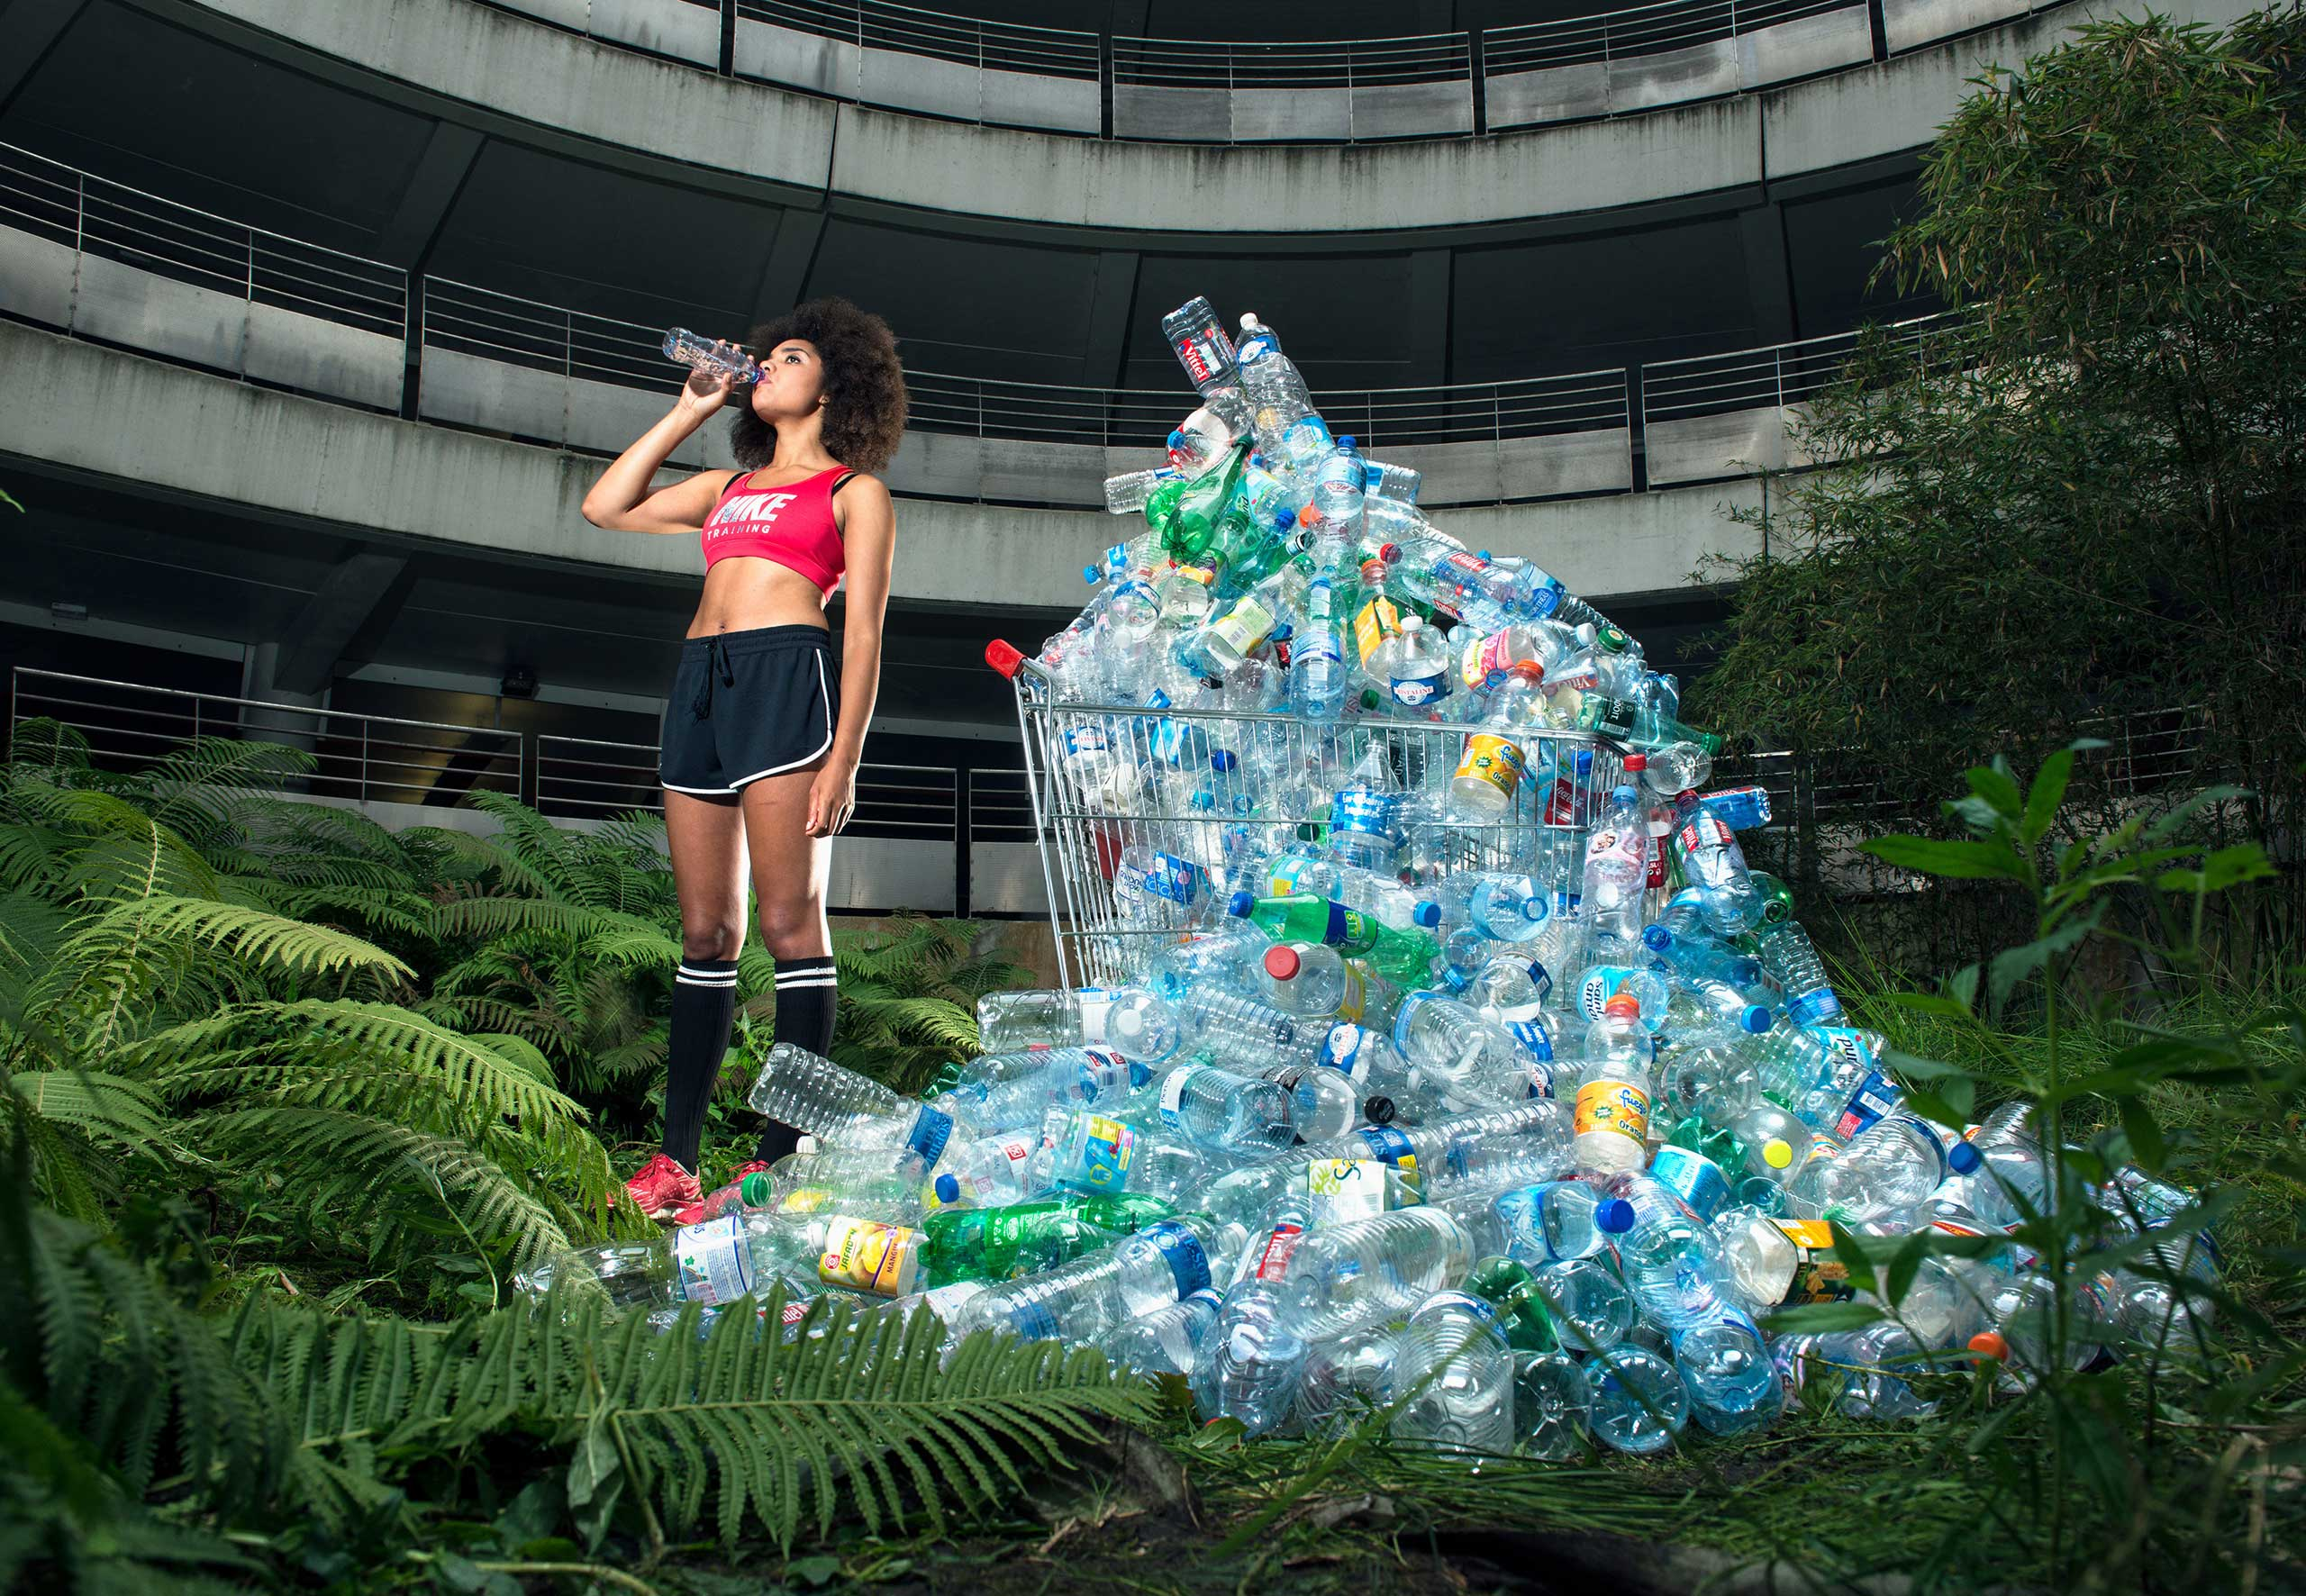 A woman drinks out of a water bottle near a  waste bank  of recycled waste in France. It's part of an exhibition exploring the excessive waste habits.